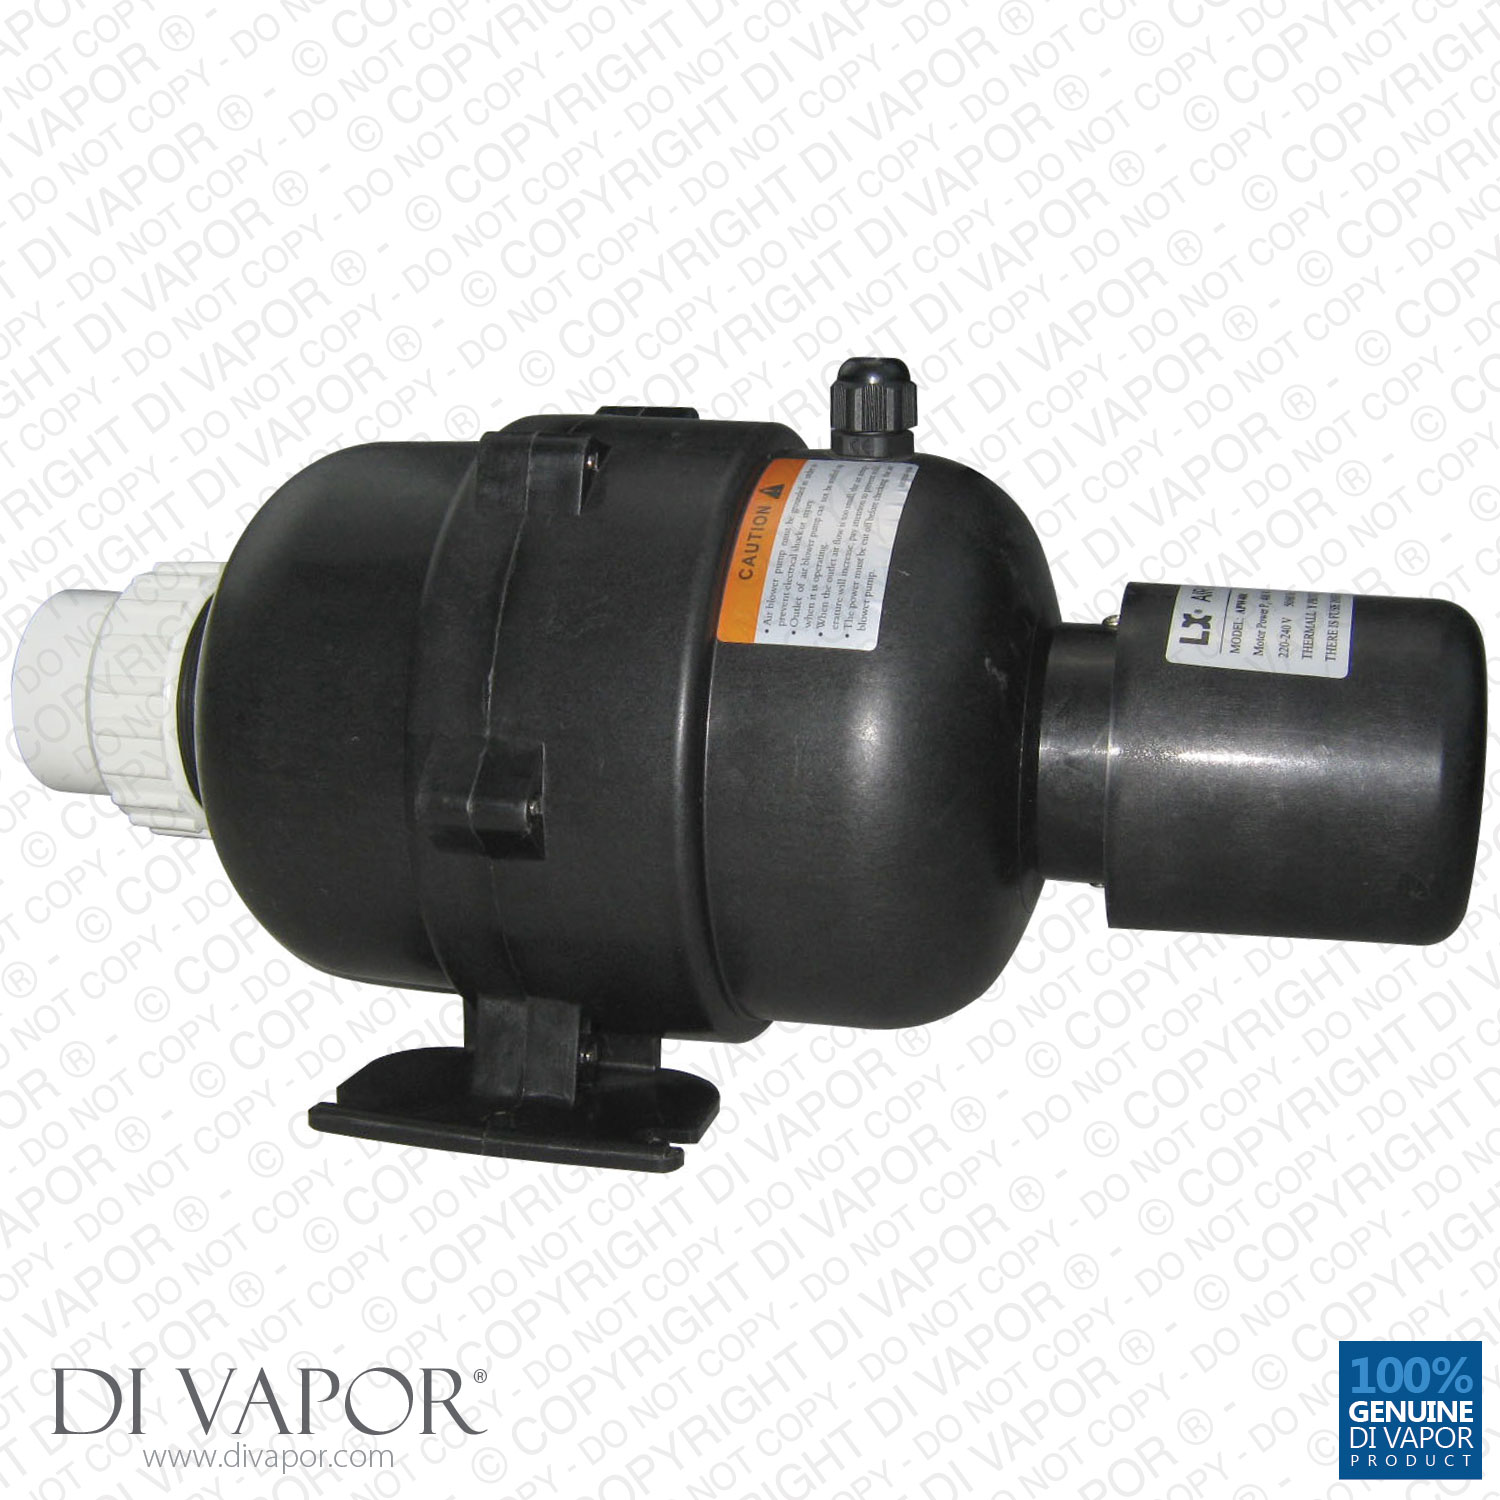 Hot Tub Blower : Lx apw v air blower pump hp with heater w